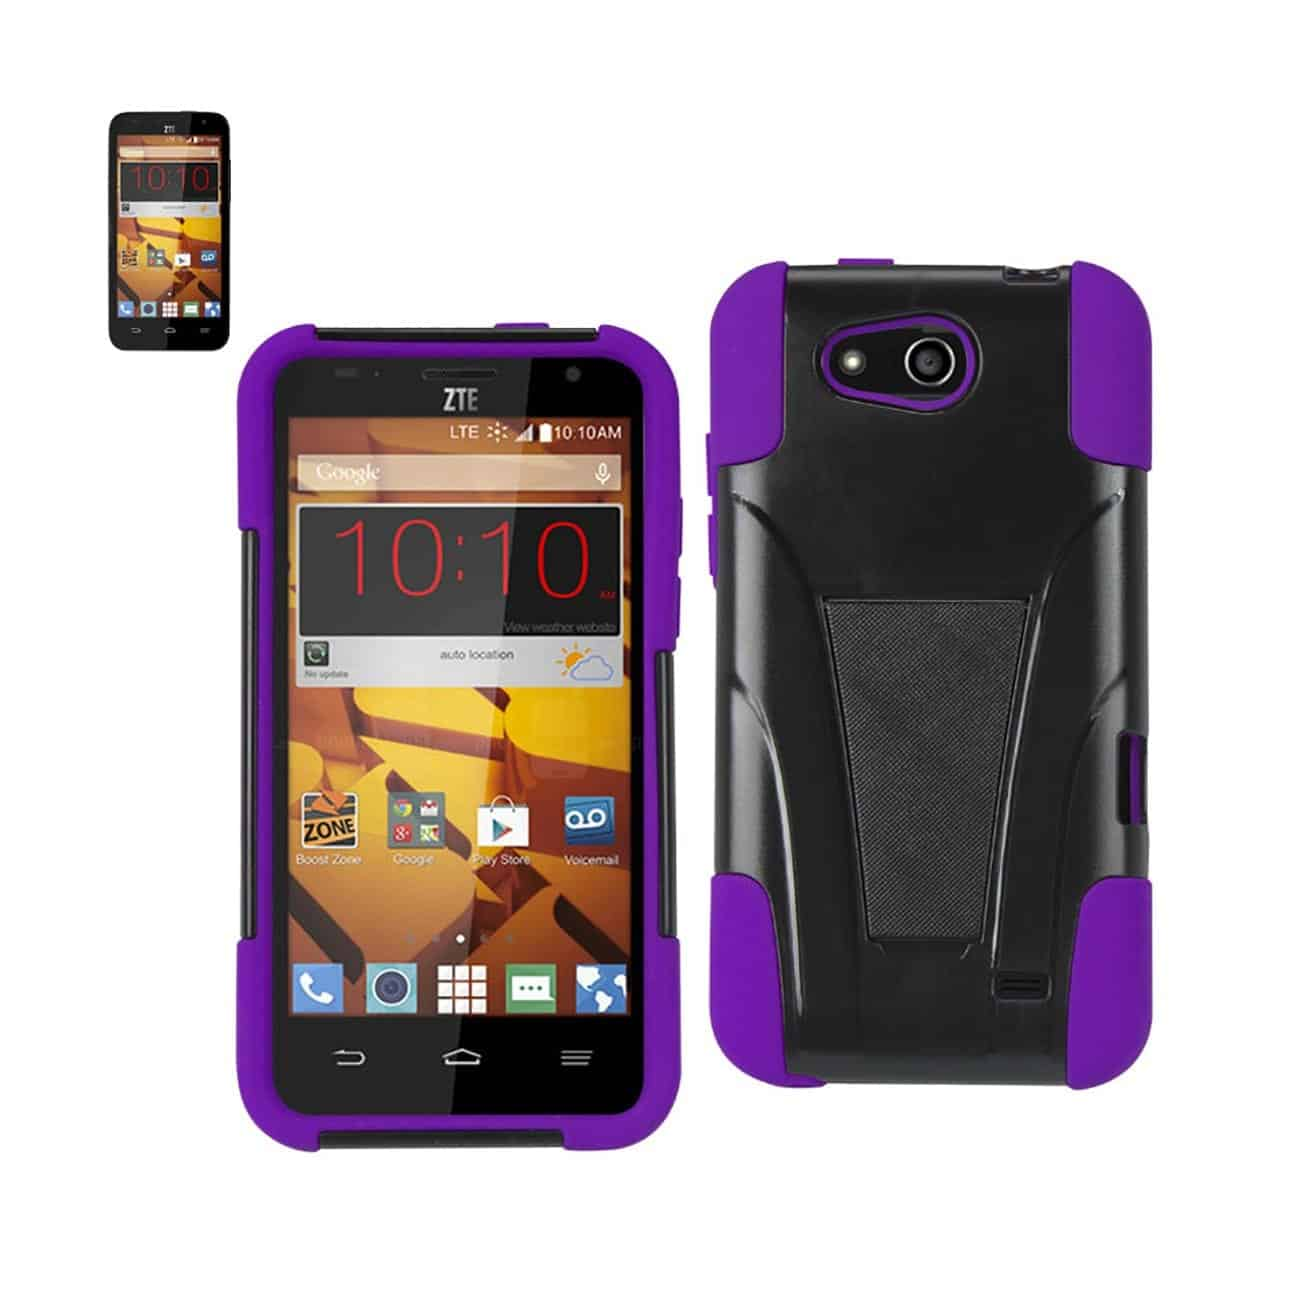 ZTE SPEED HYBRID HEAVY DUTY CASE WITH KICKSTAND IN PURPLE BLACK